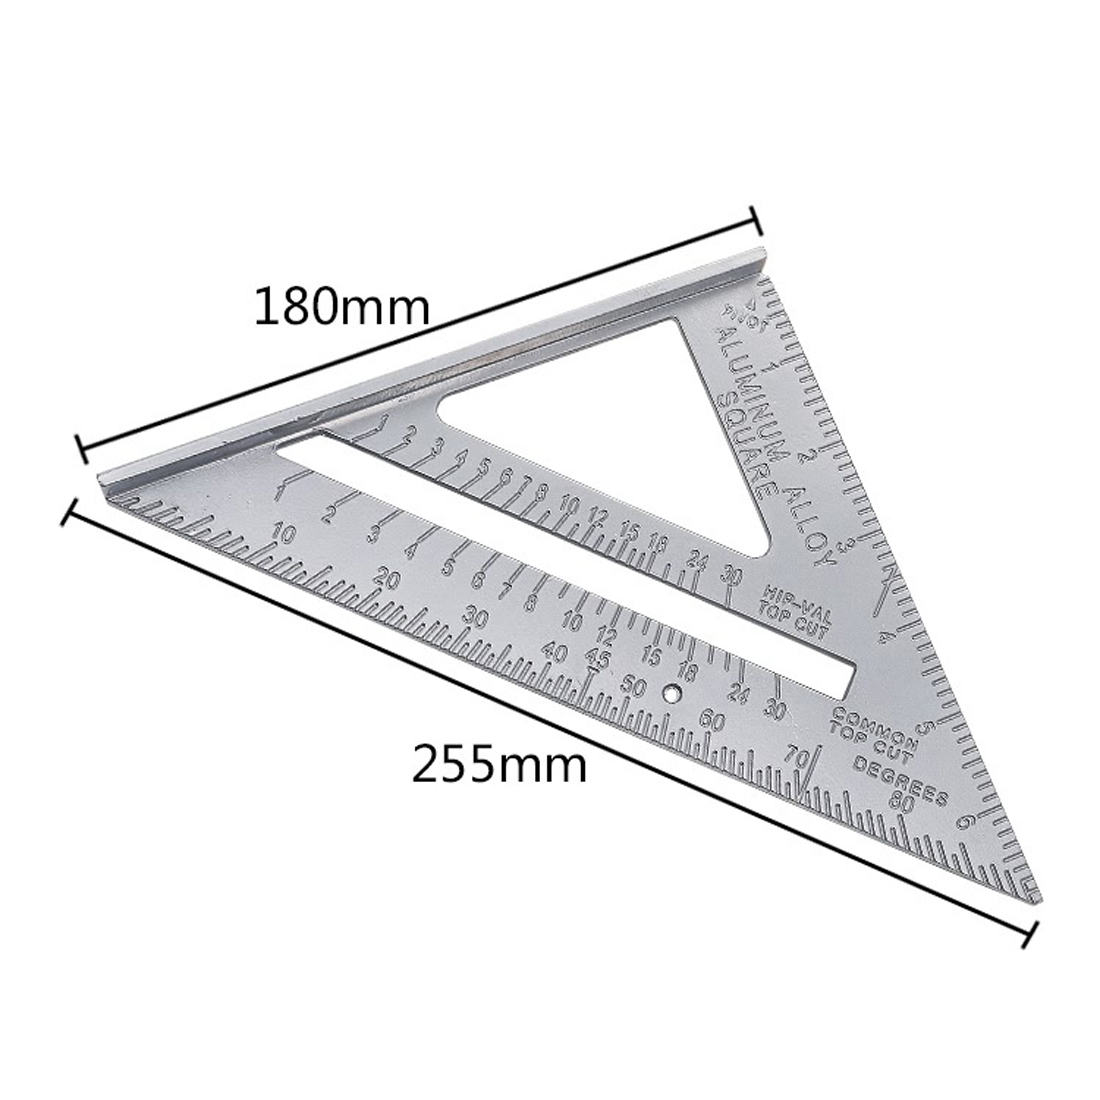 Carpenter Ruler Aluminum Alloy Speed Square Protractor Miter Framing Tri-square Line Scriber Saw Guide Measurement Meter